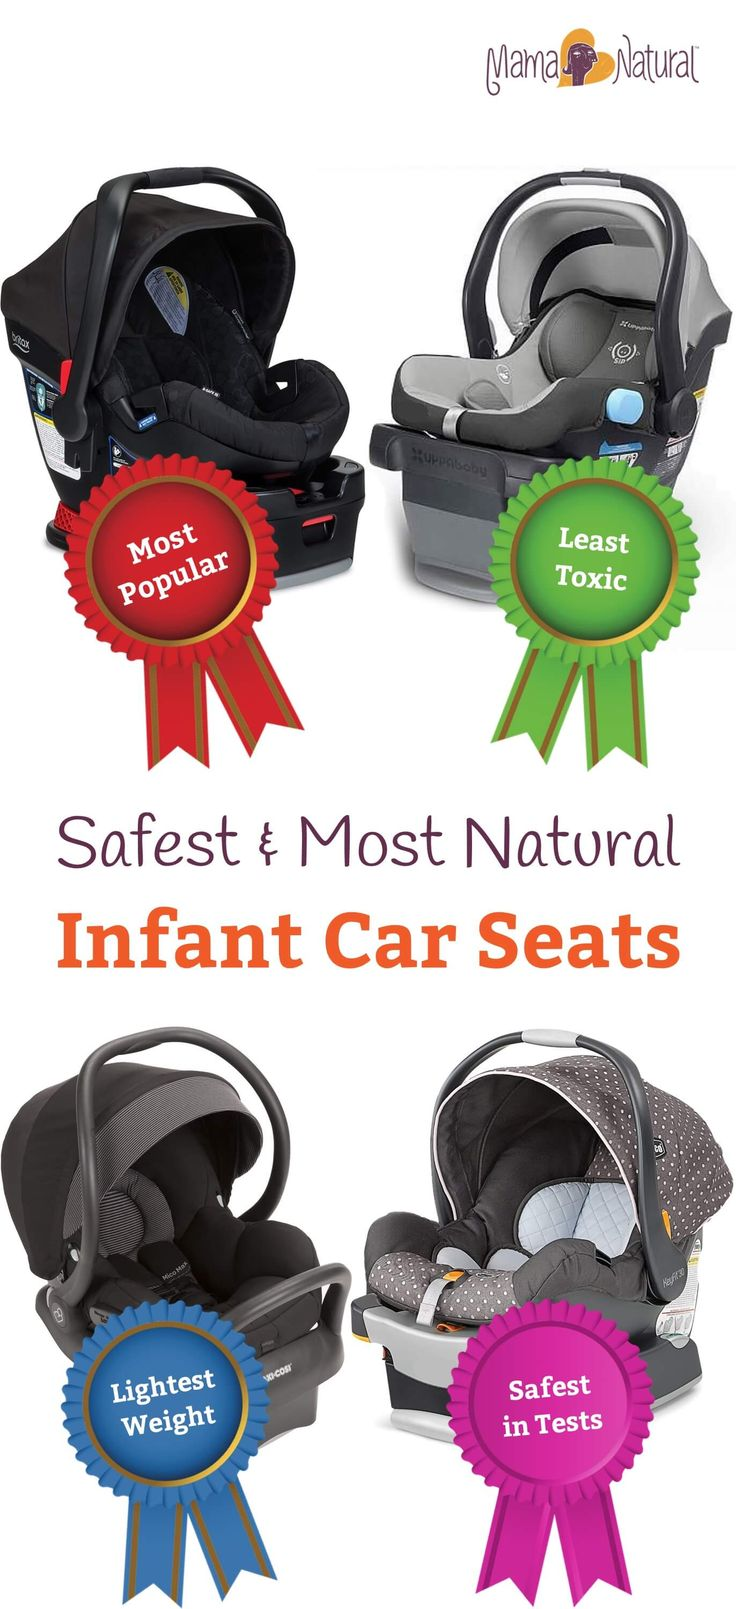 An infant car seat may be one of the most important things you buy for your baby. Here are reviews of the safest, most natural & nontoxic options. http://www.mamanatural.com/infant-car-seat/